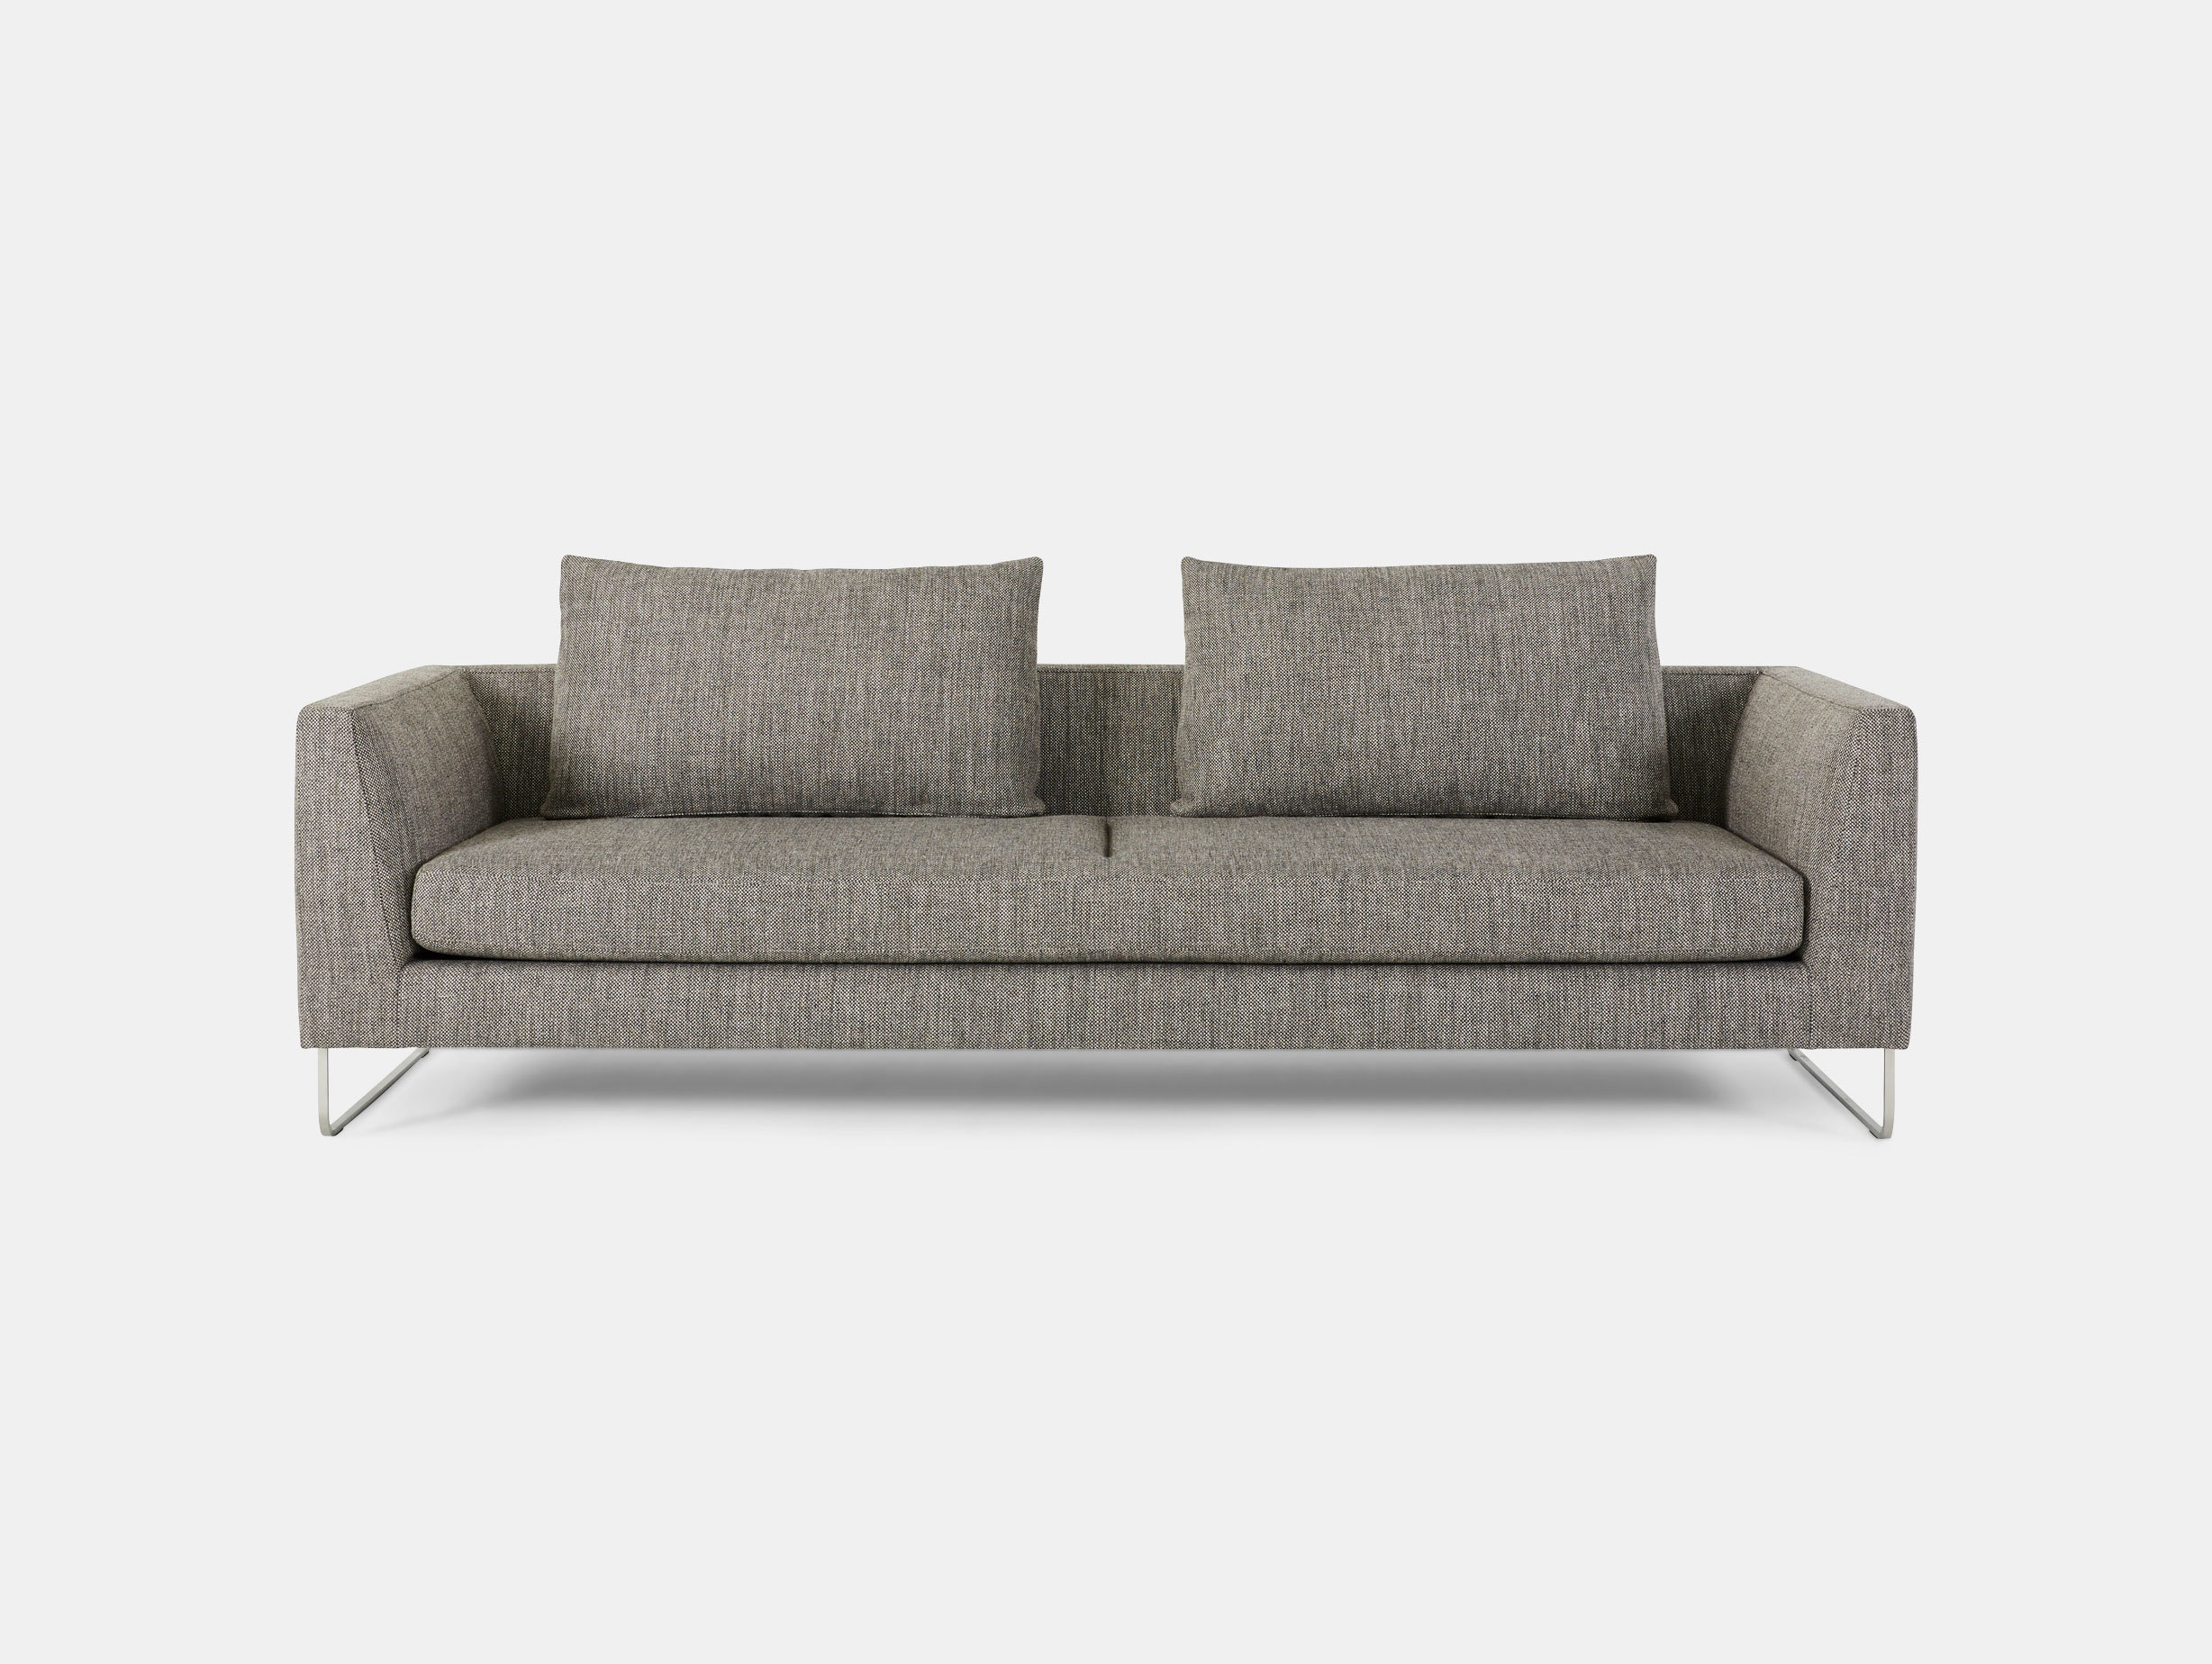 Montis Daley Sofa 2